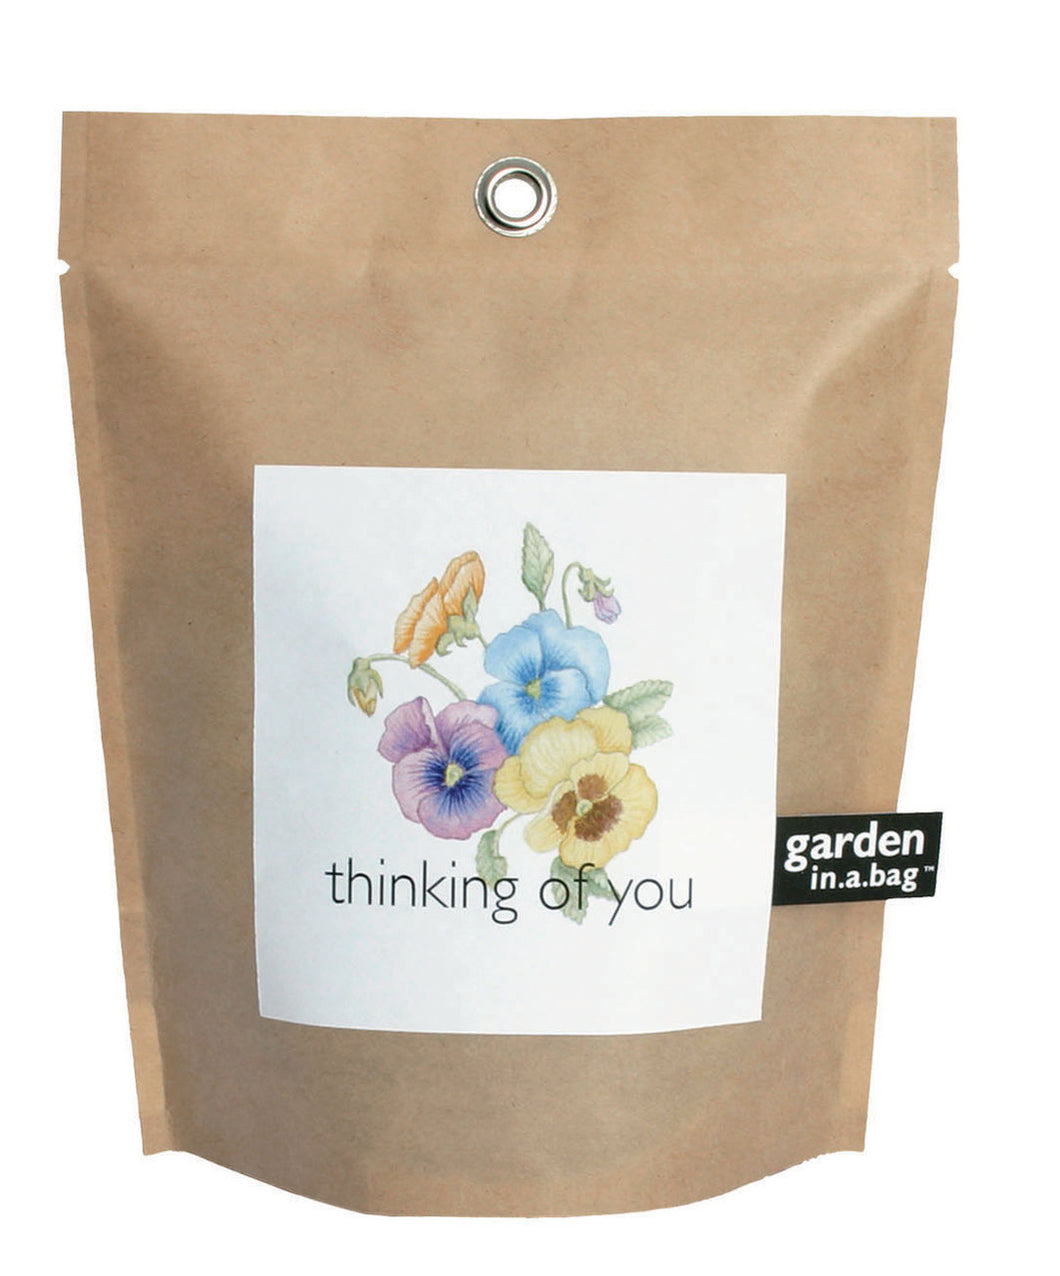 Garden-in-a-bag Thinking of You - Edwina Alexis